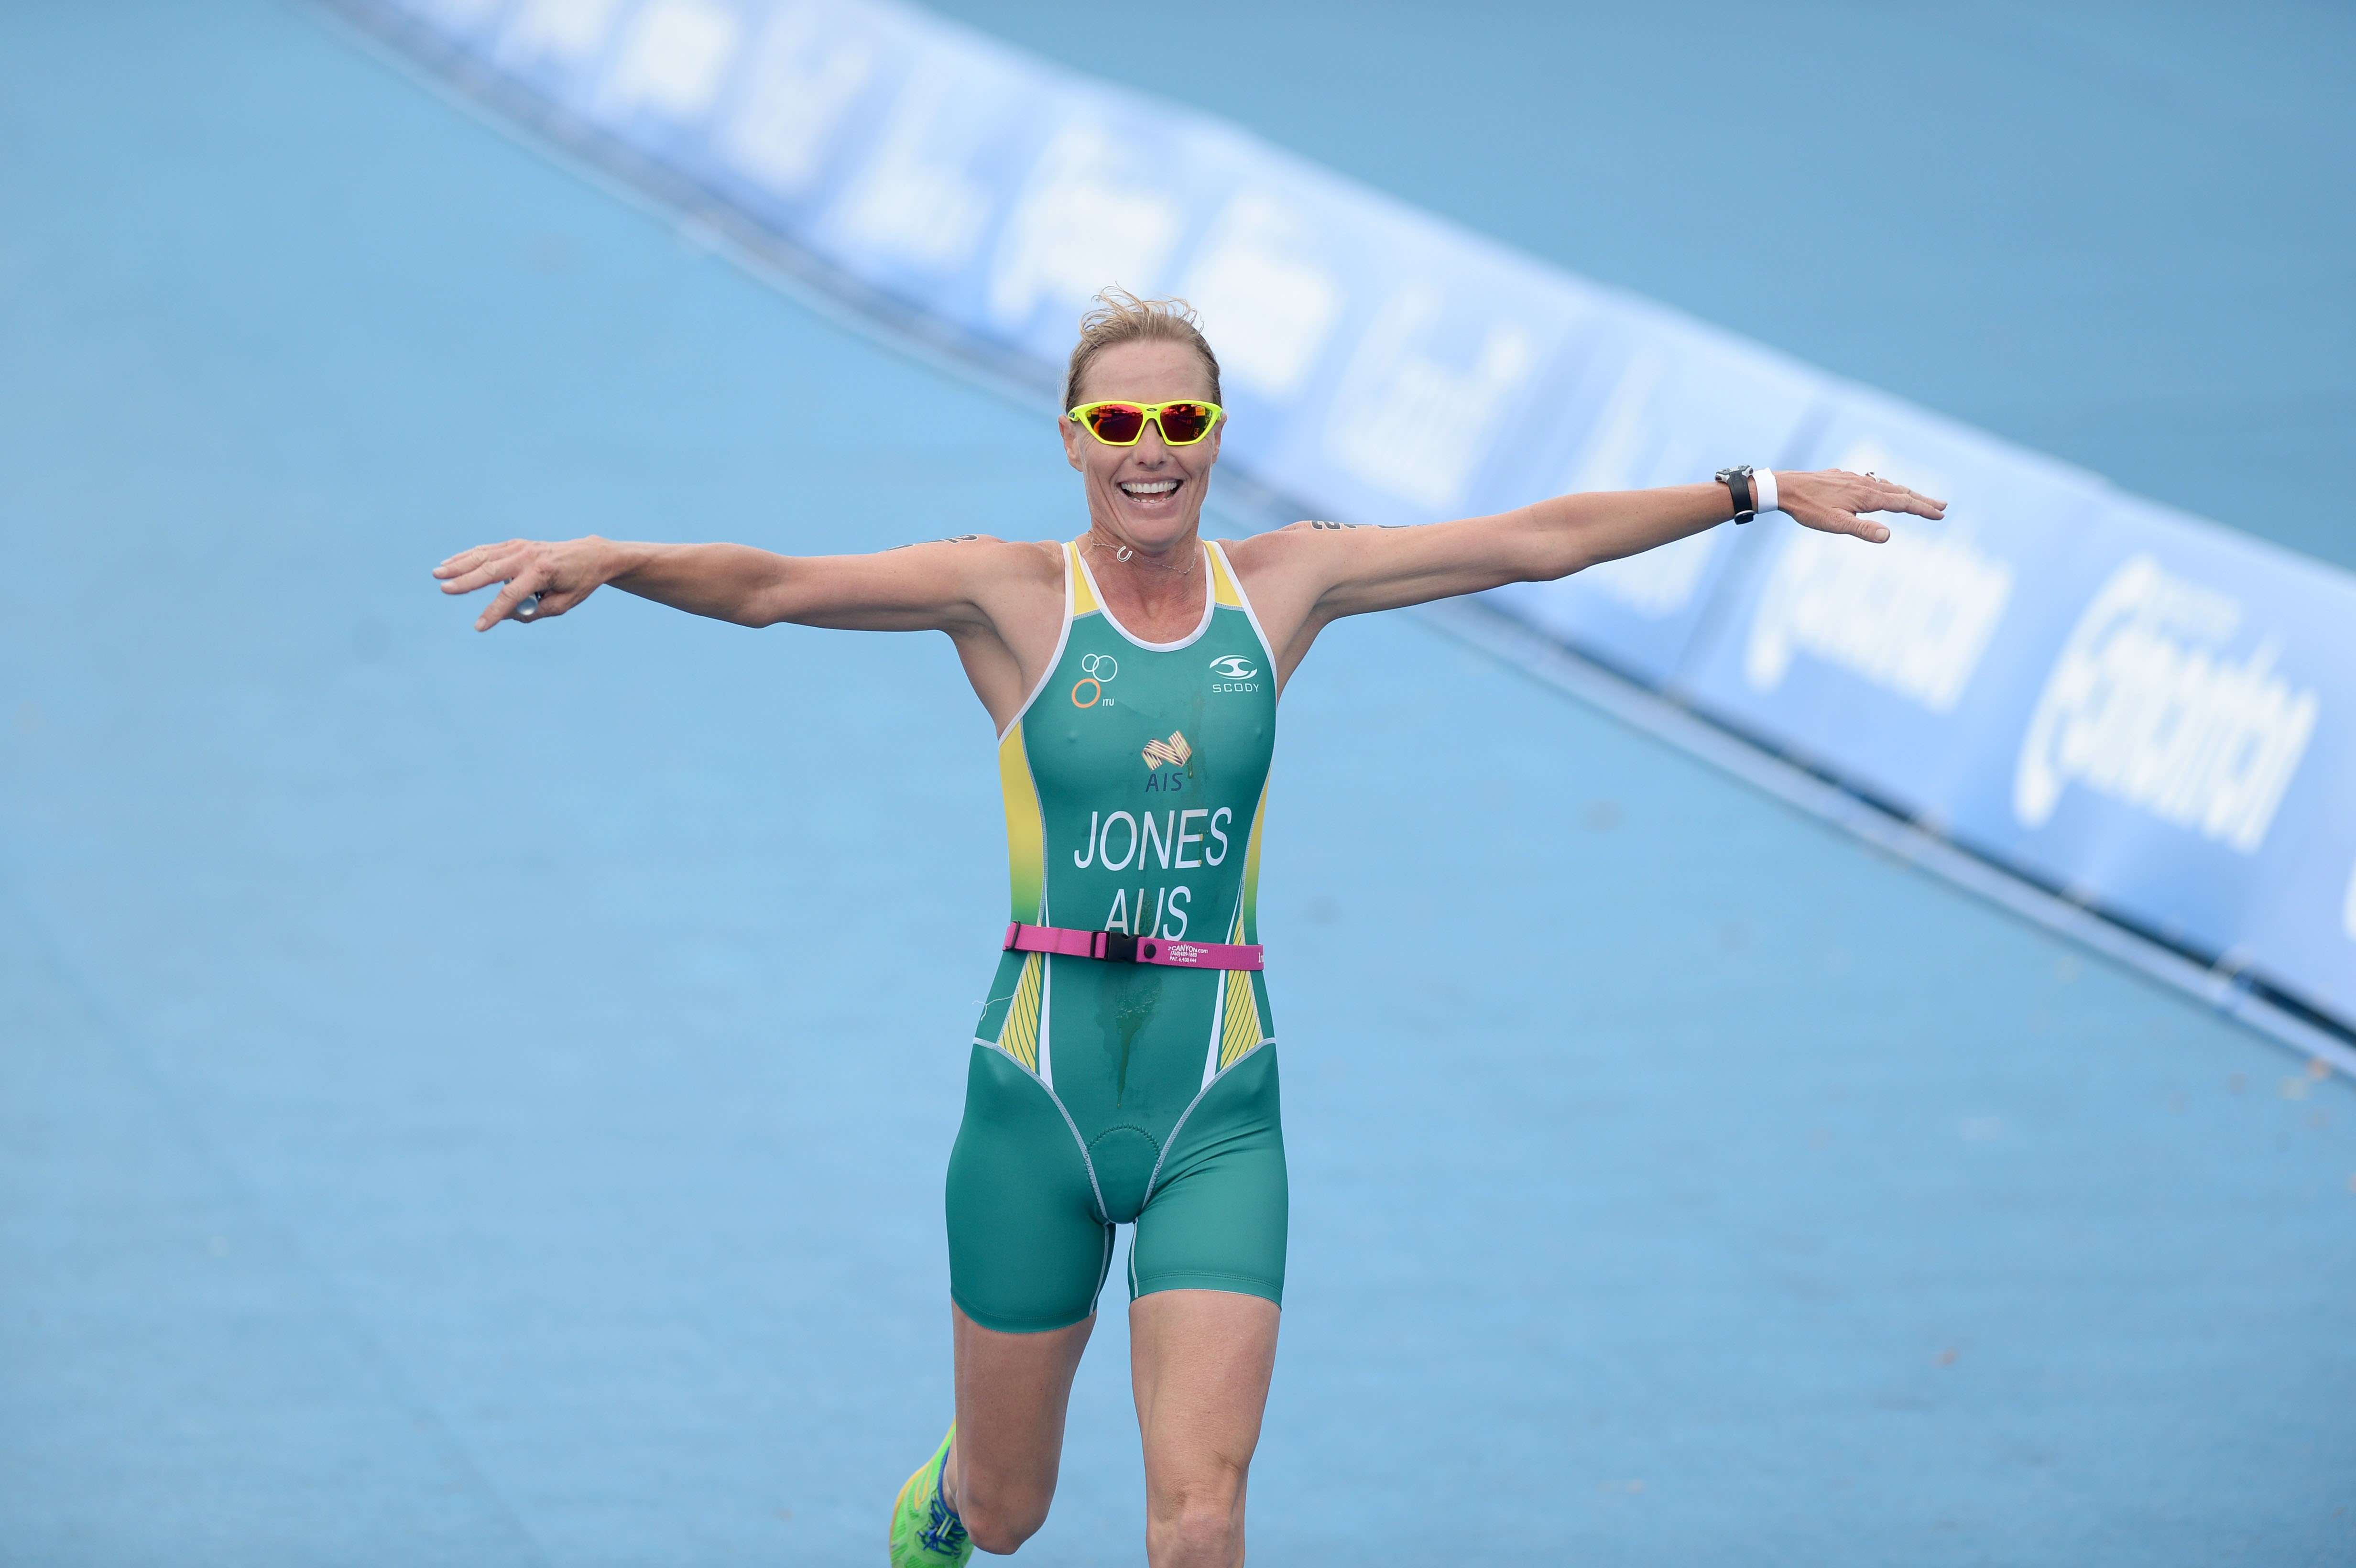 Michelle Jones - ITU World Triathlon Championships in Rotterdam